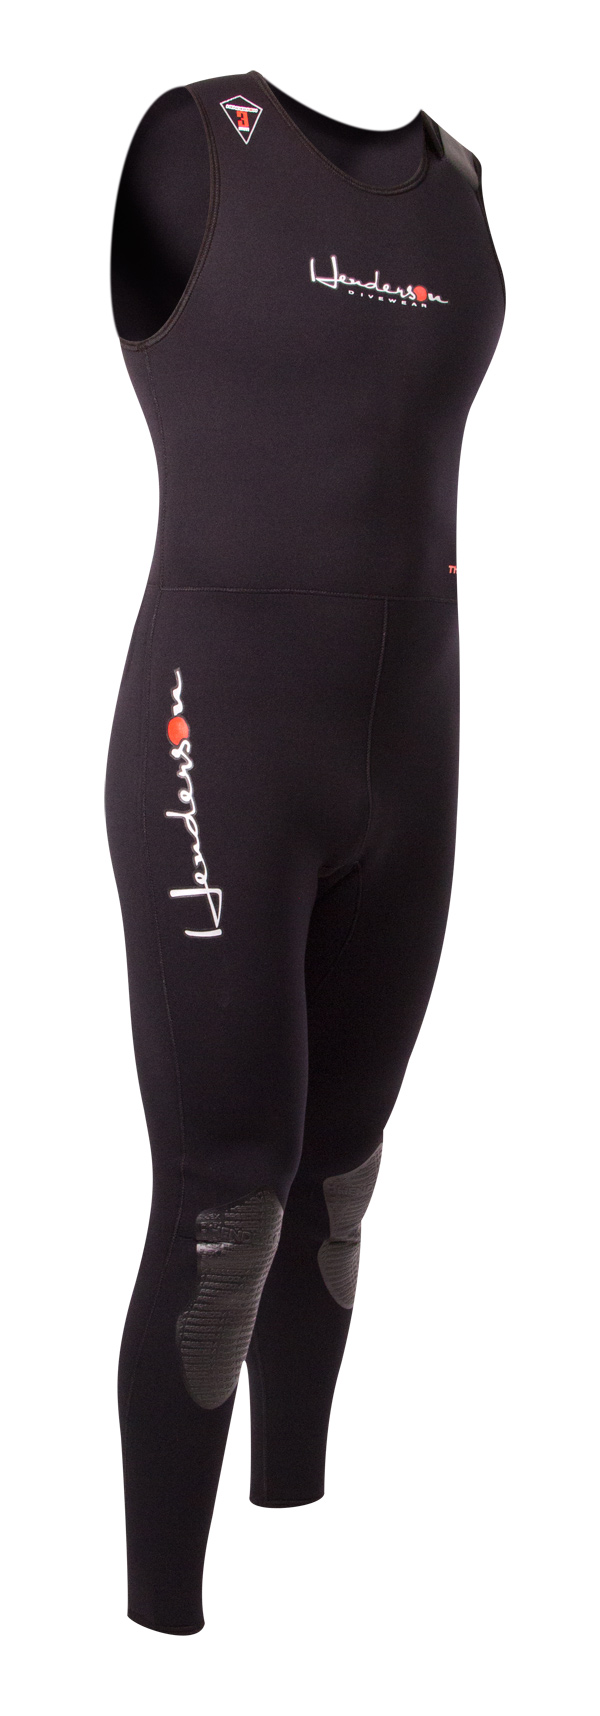 Henderson Thermoprene 7mm Men's Long John Wetsuit - Combo